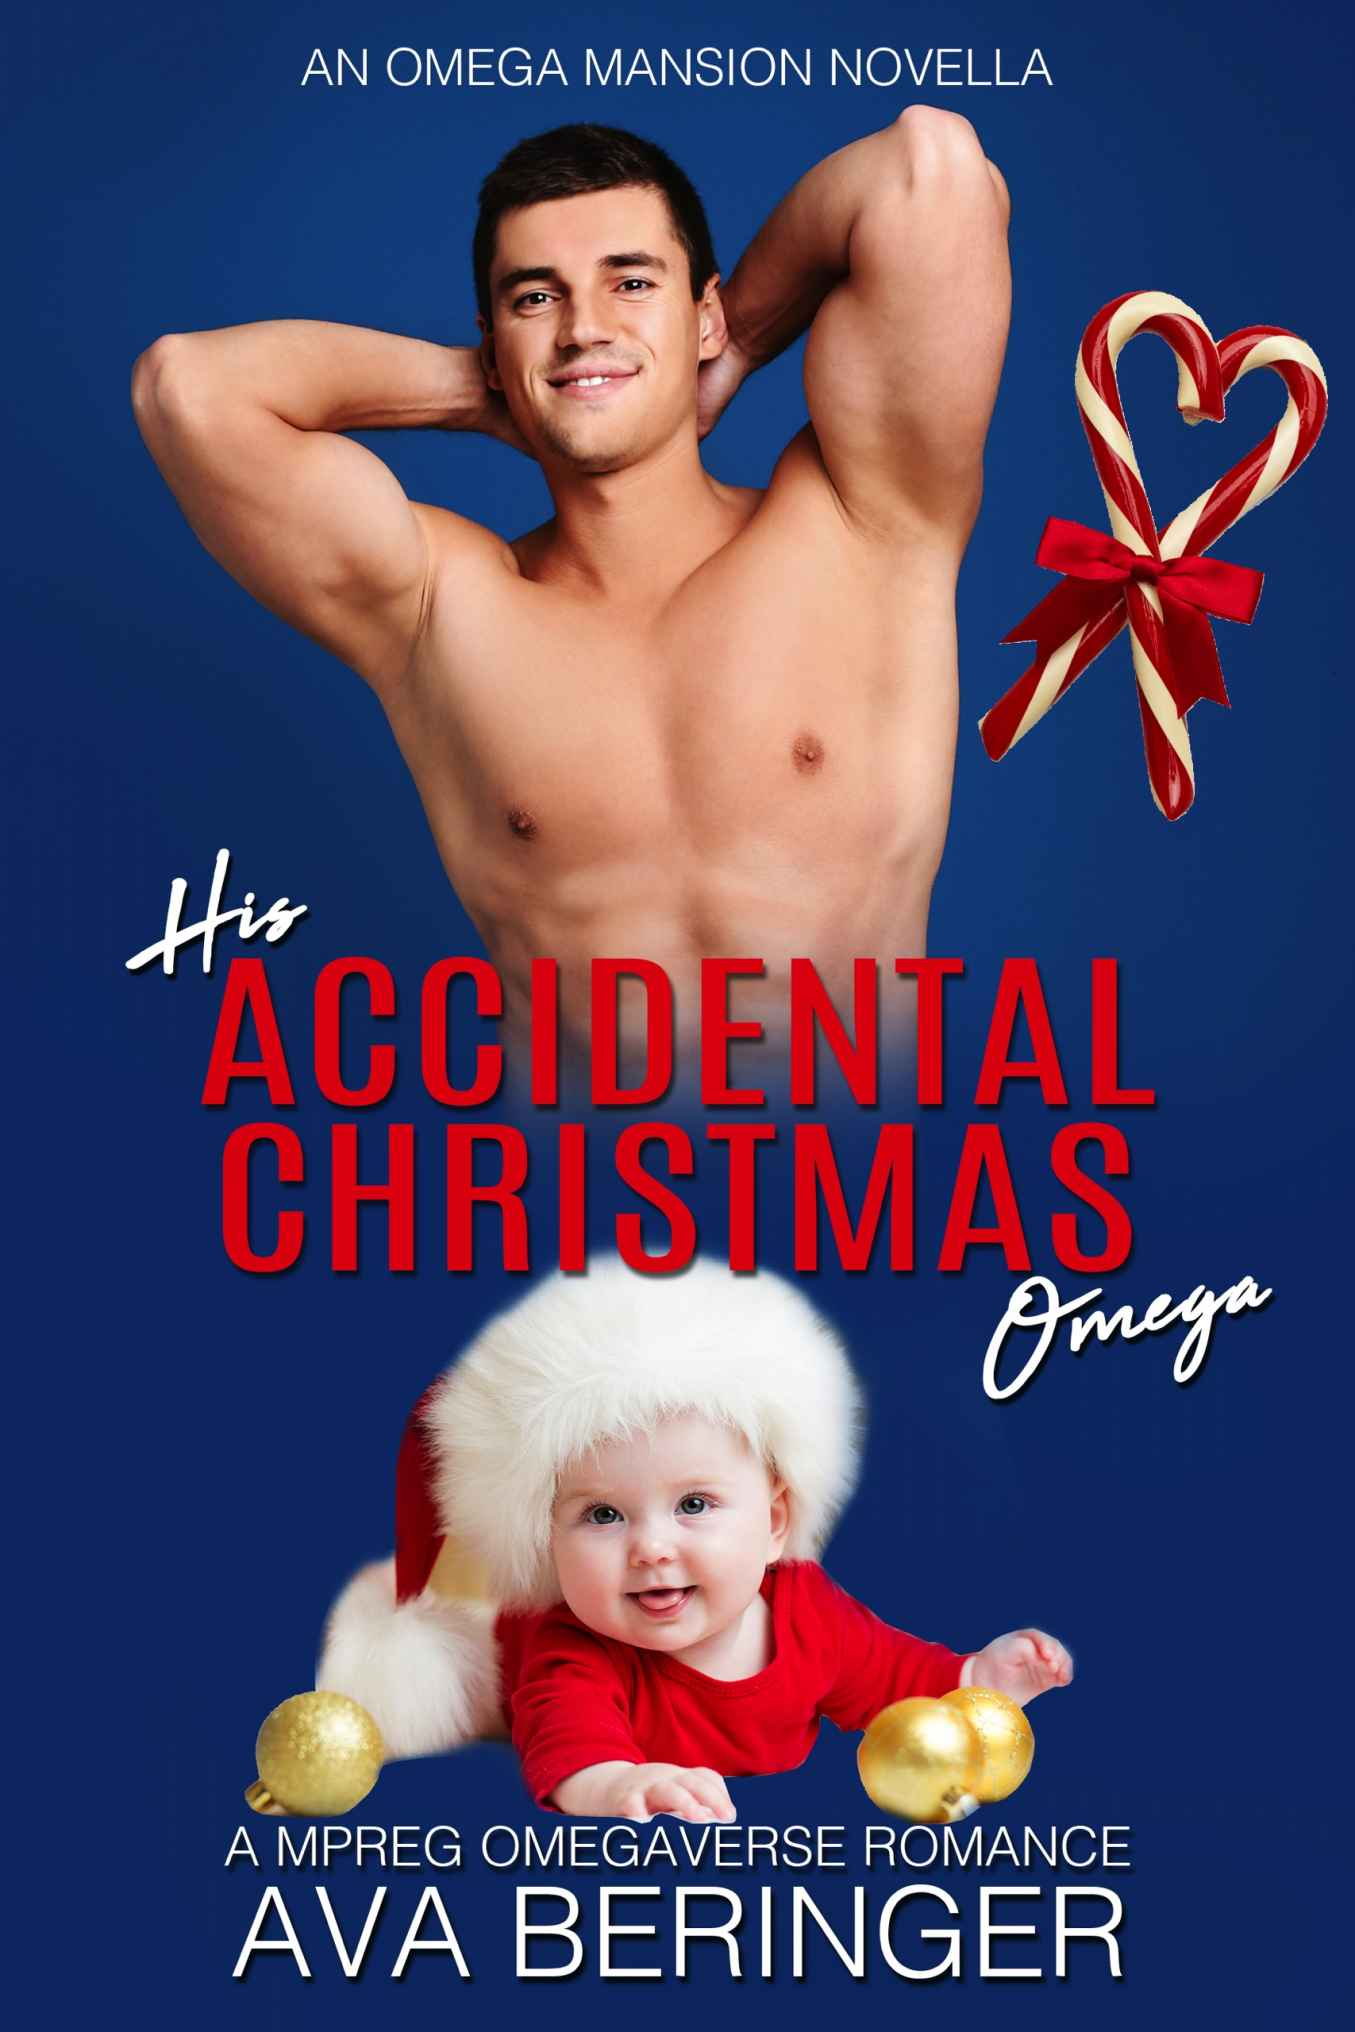 His Accidental Christmas Omega Cover